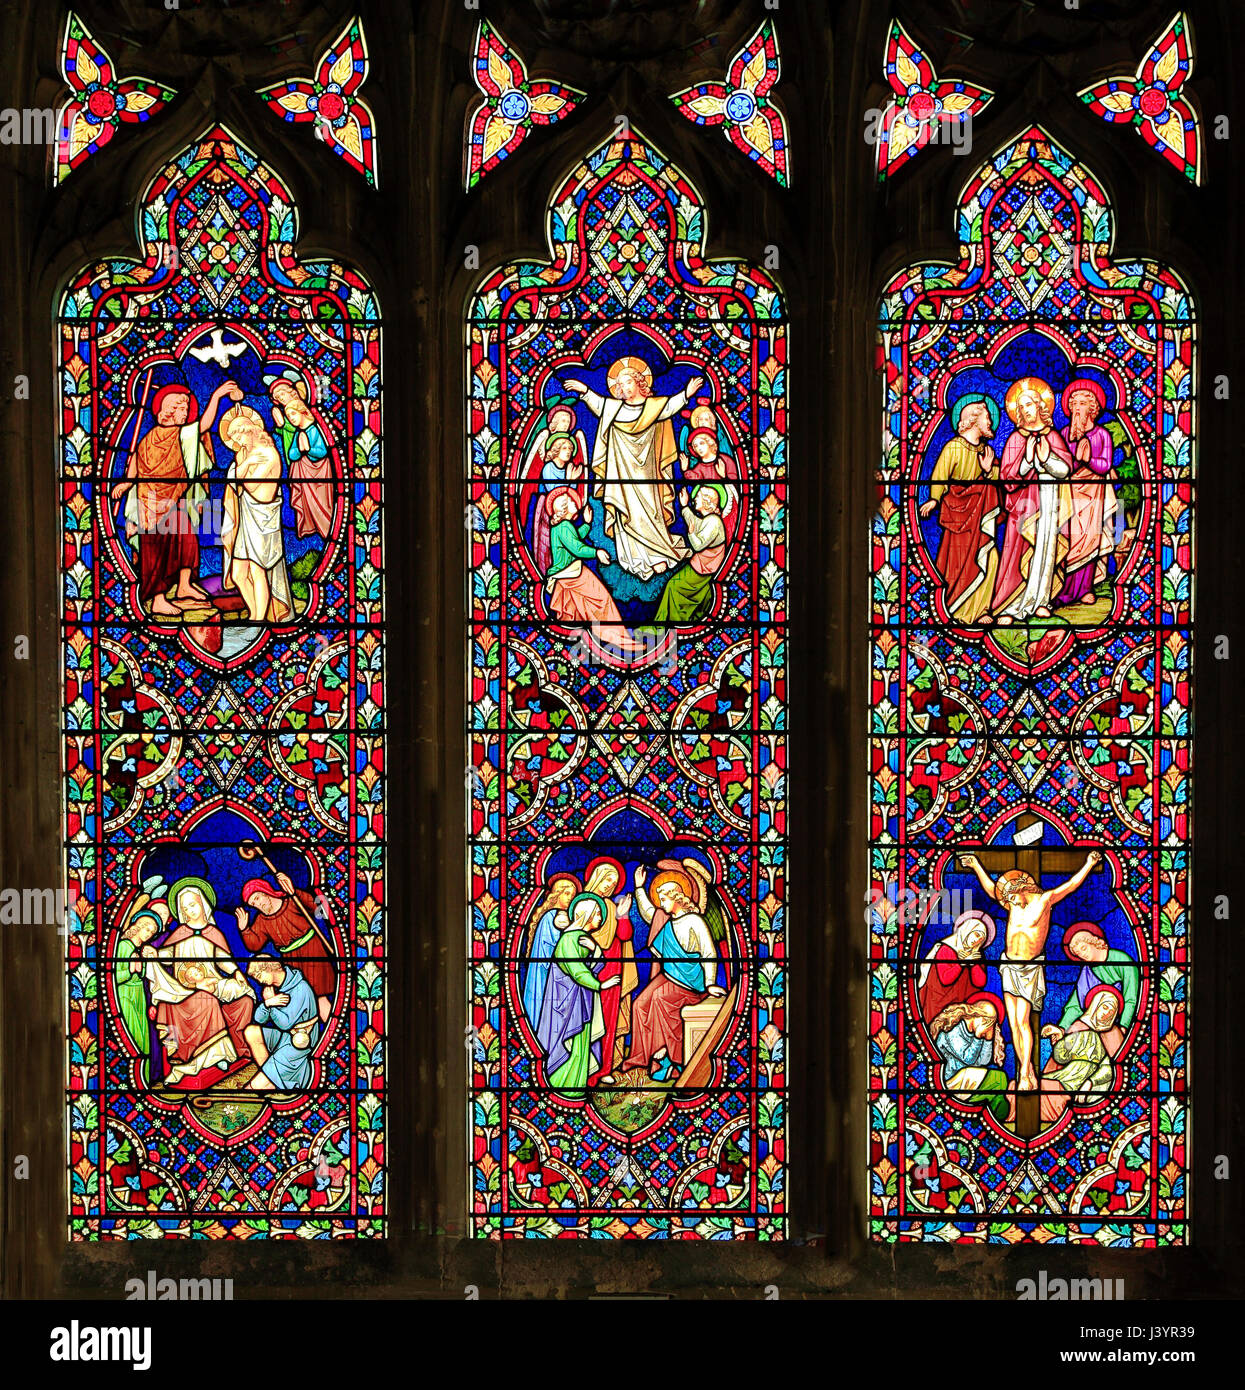 ad3d396d6754 Stained Glass window by Ward   Hughes